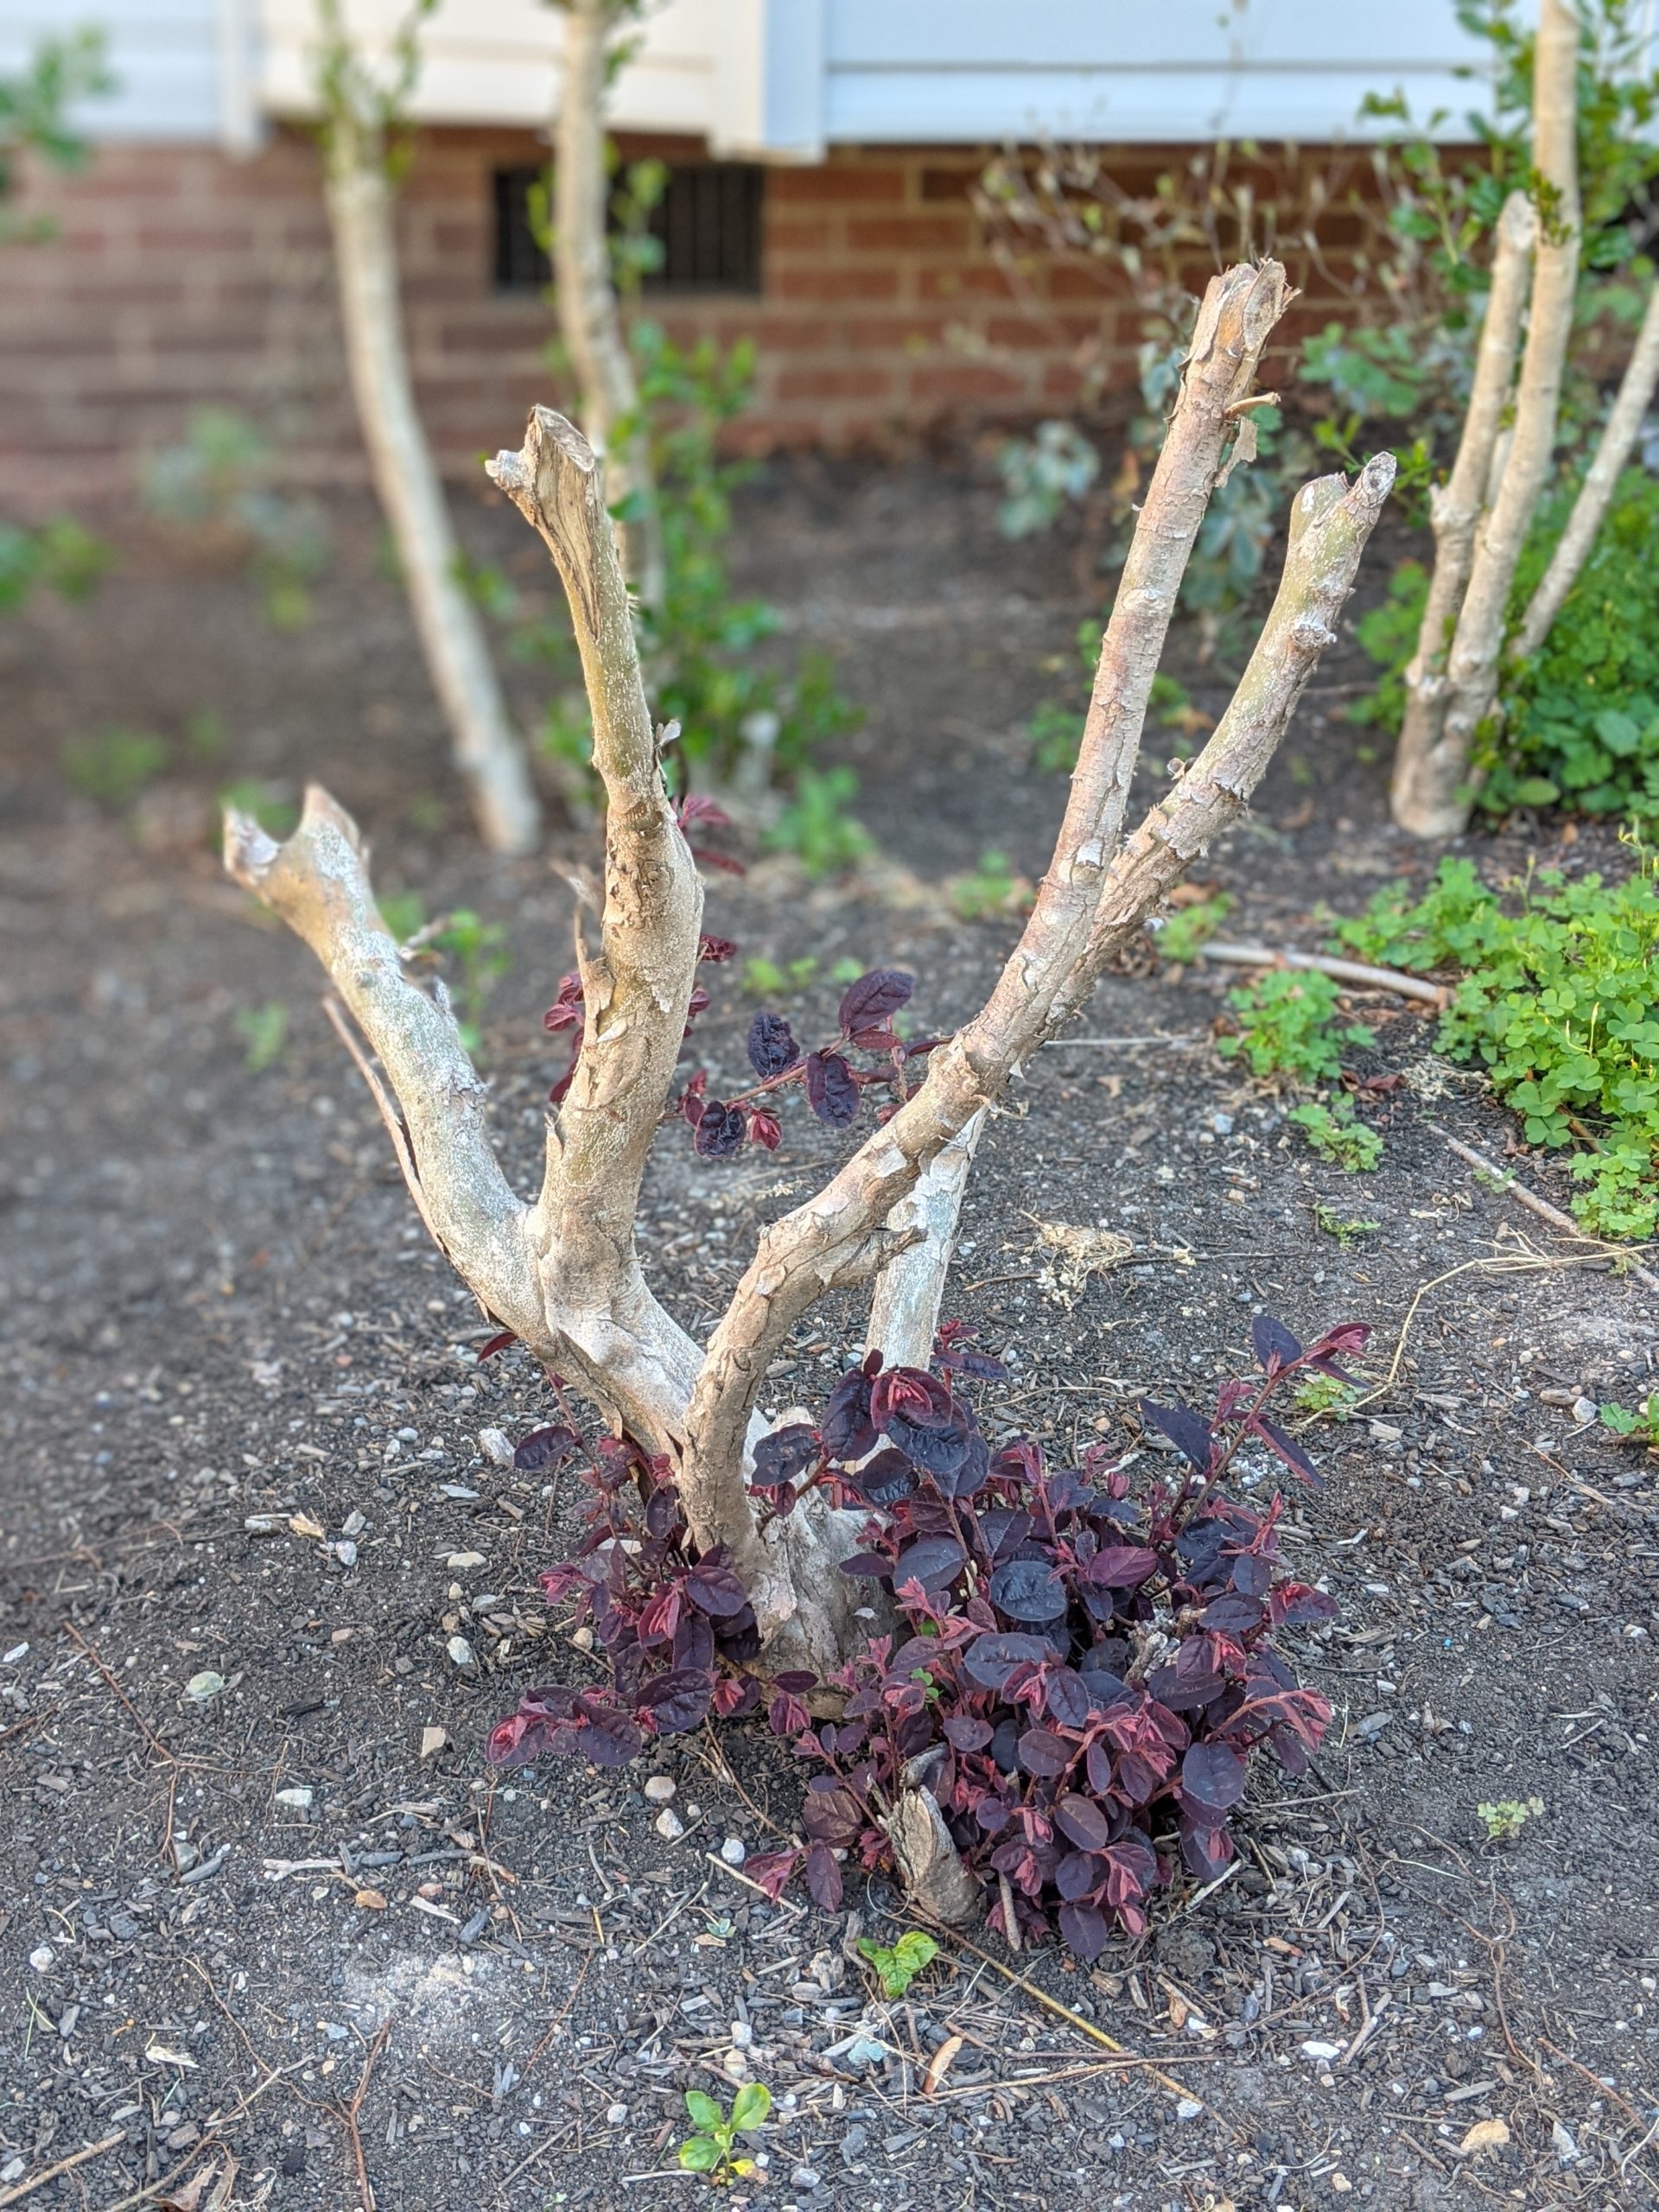 More pruning results